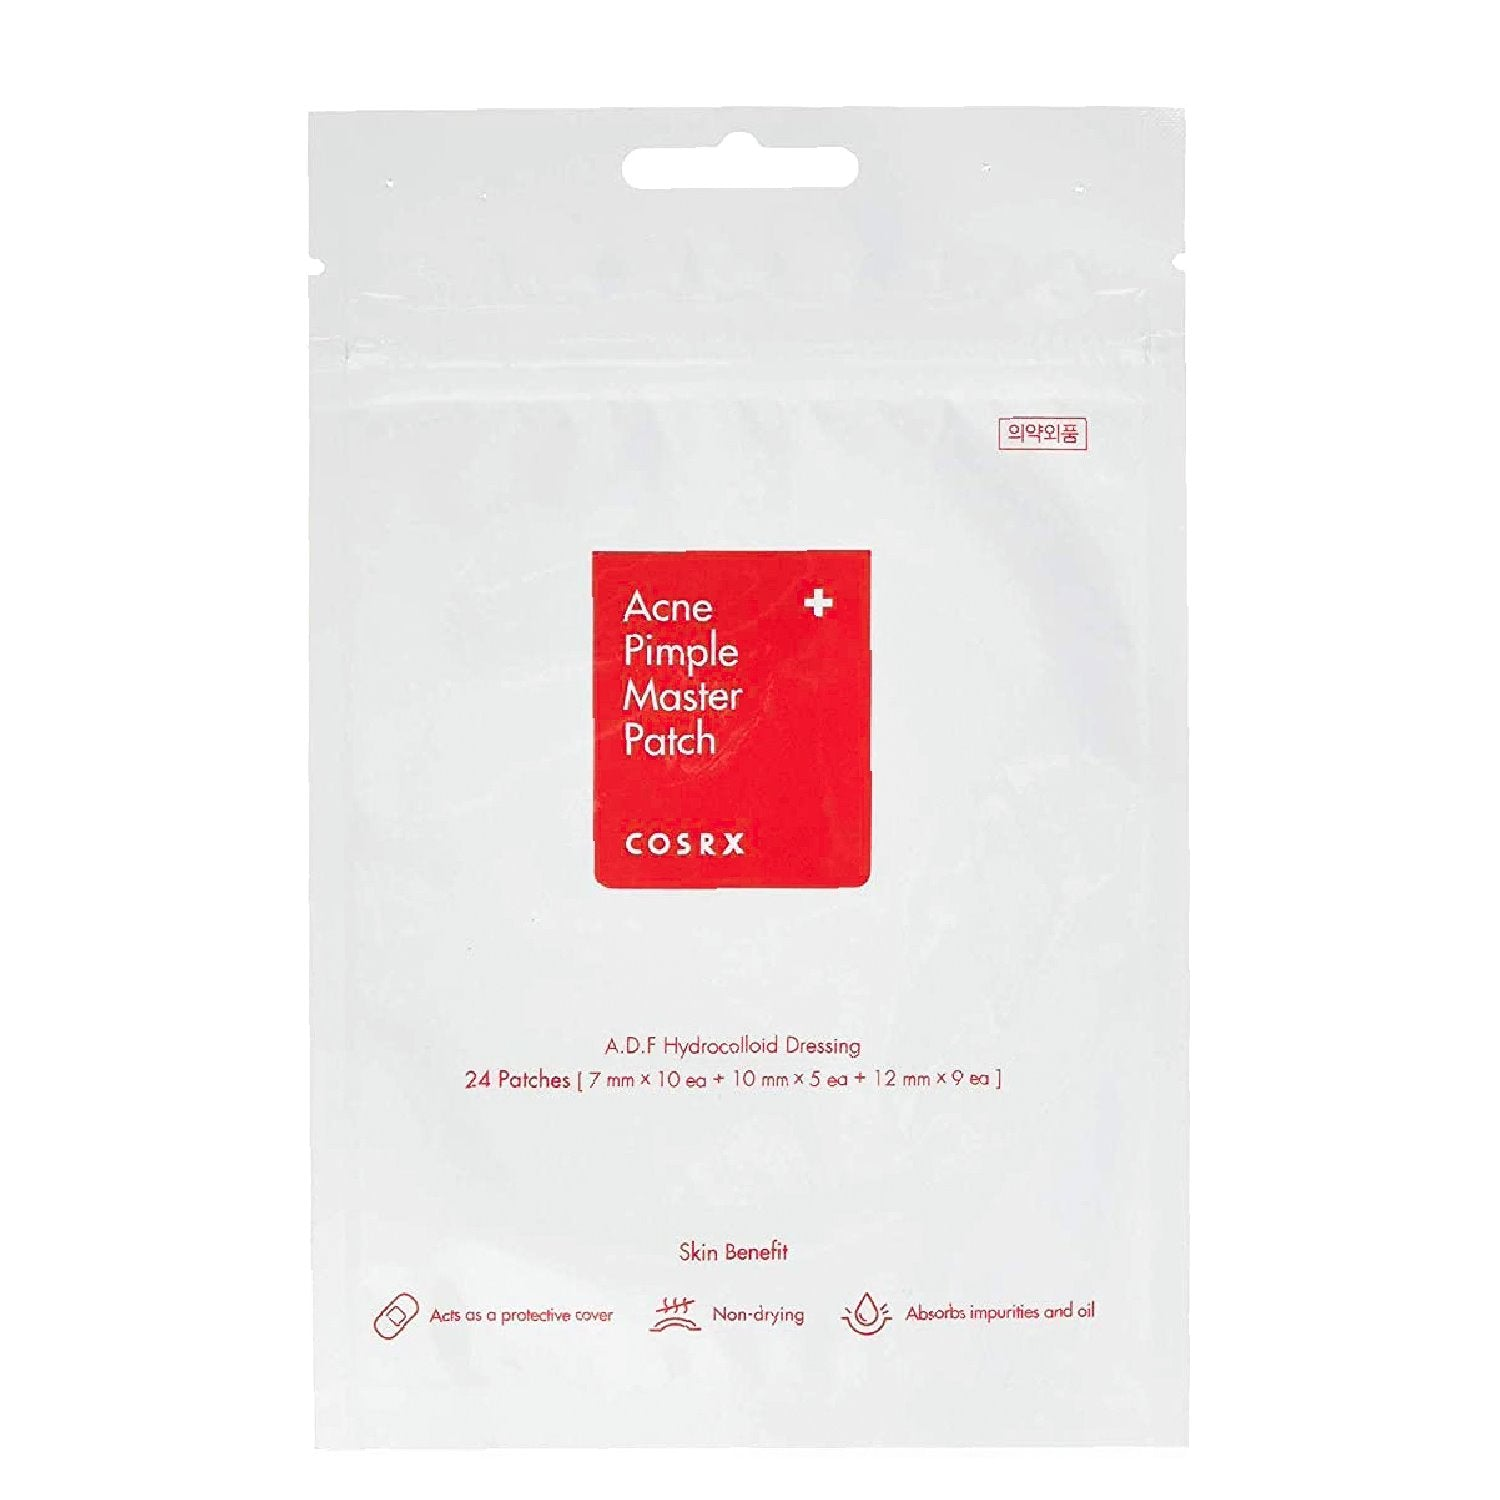 COSRX Acne Pimple Master Patch (24 patches) Spot Treatment - Skinspace